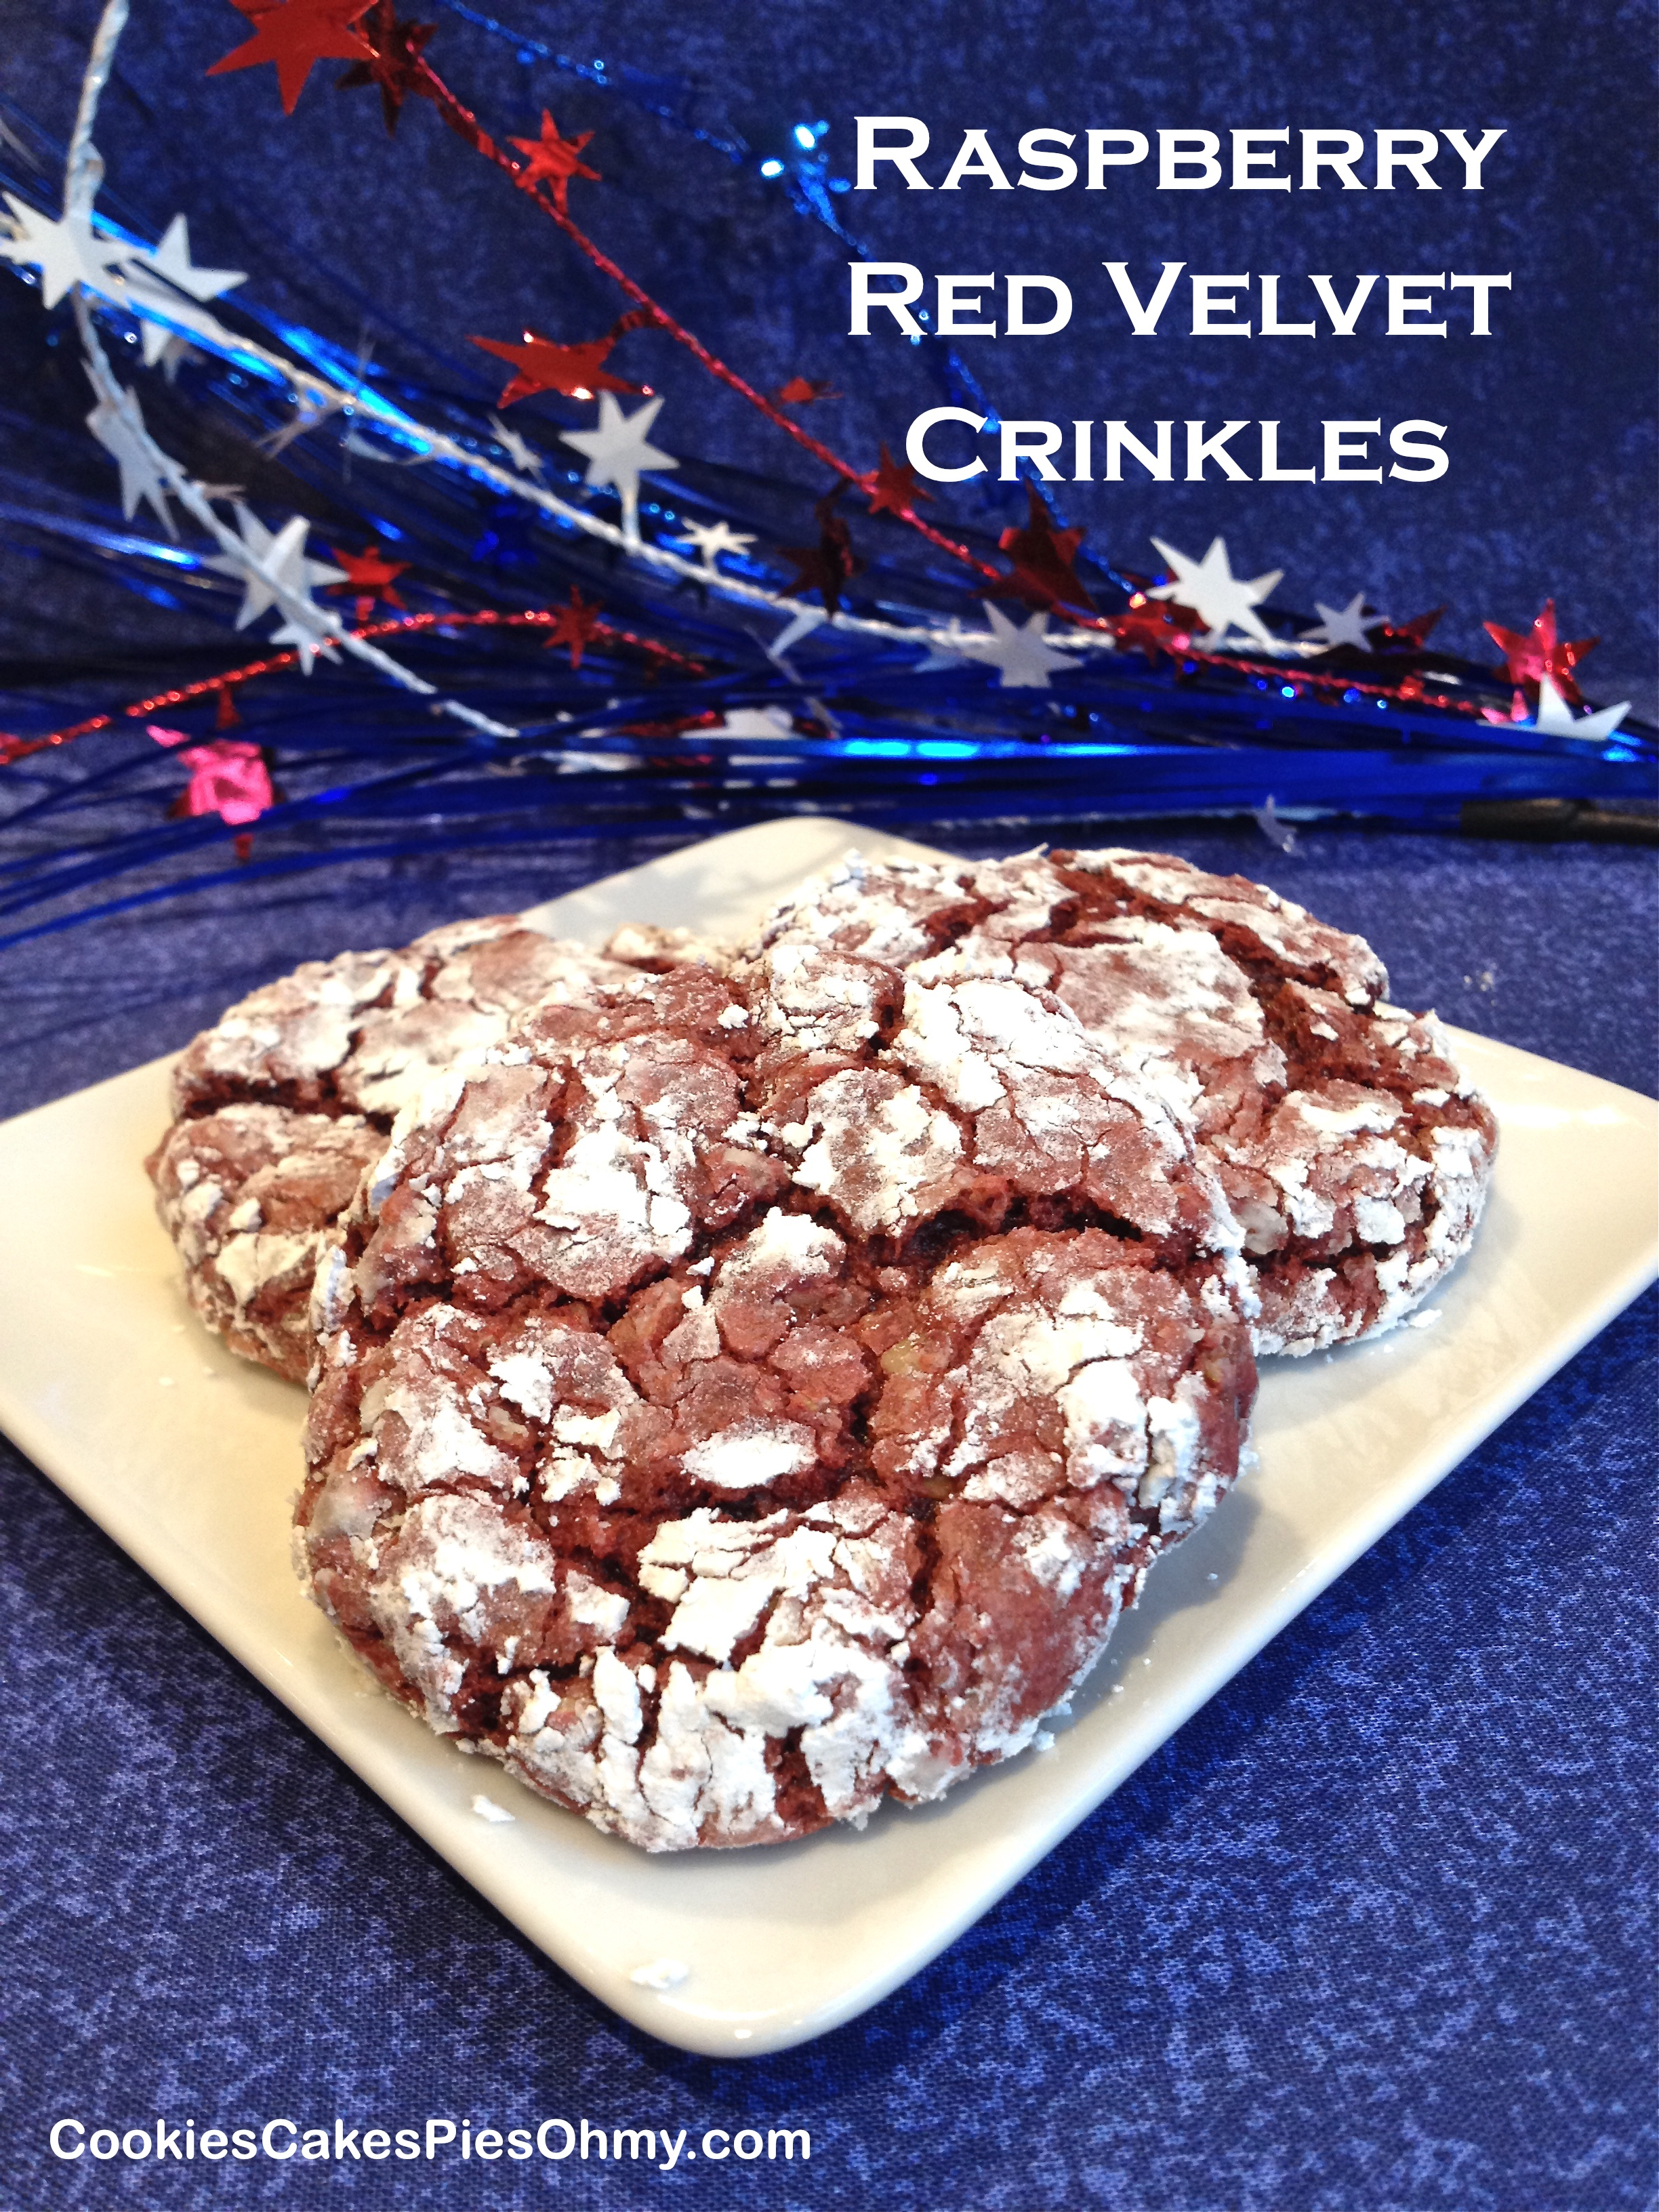 how to make red velvet crinkles